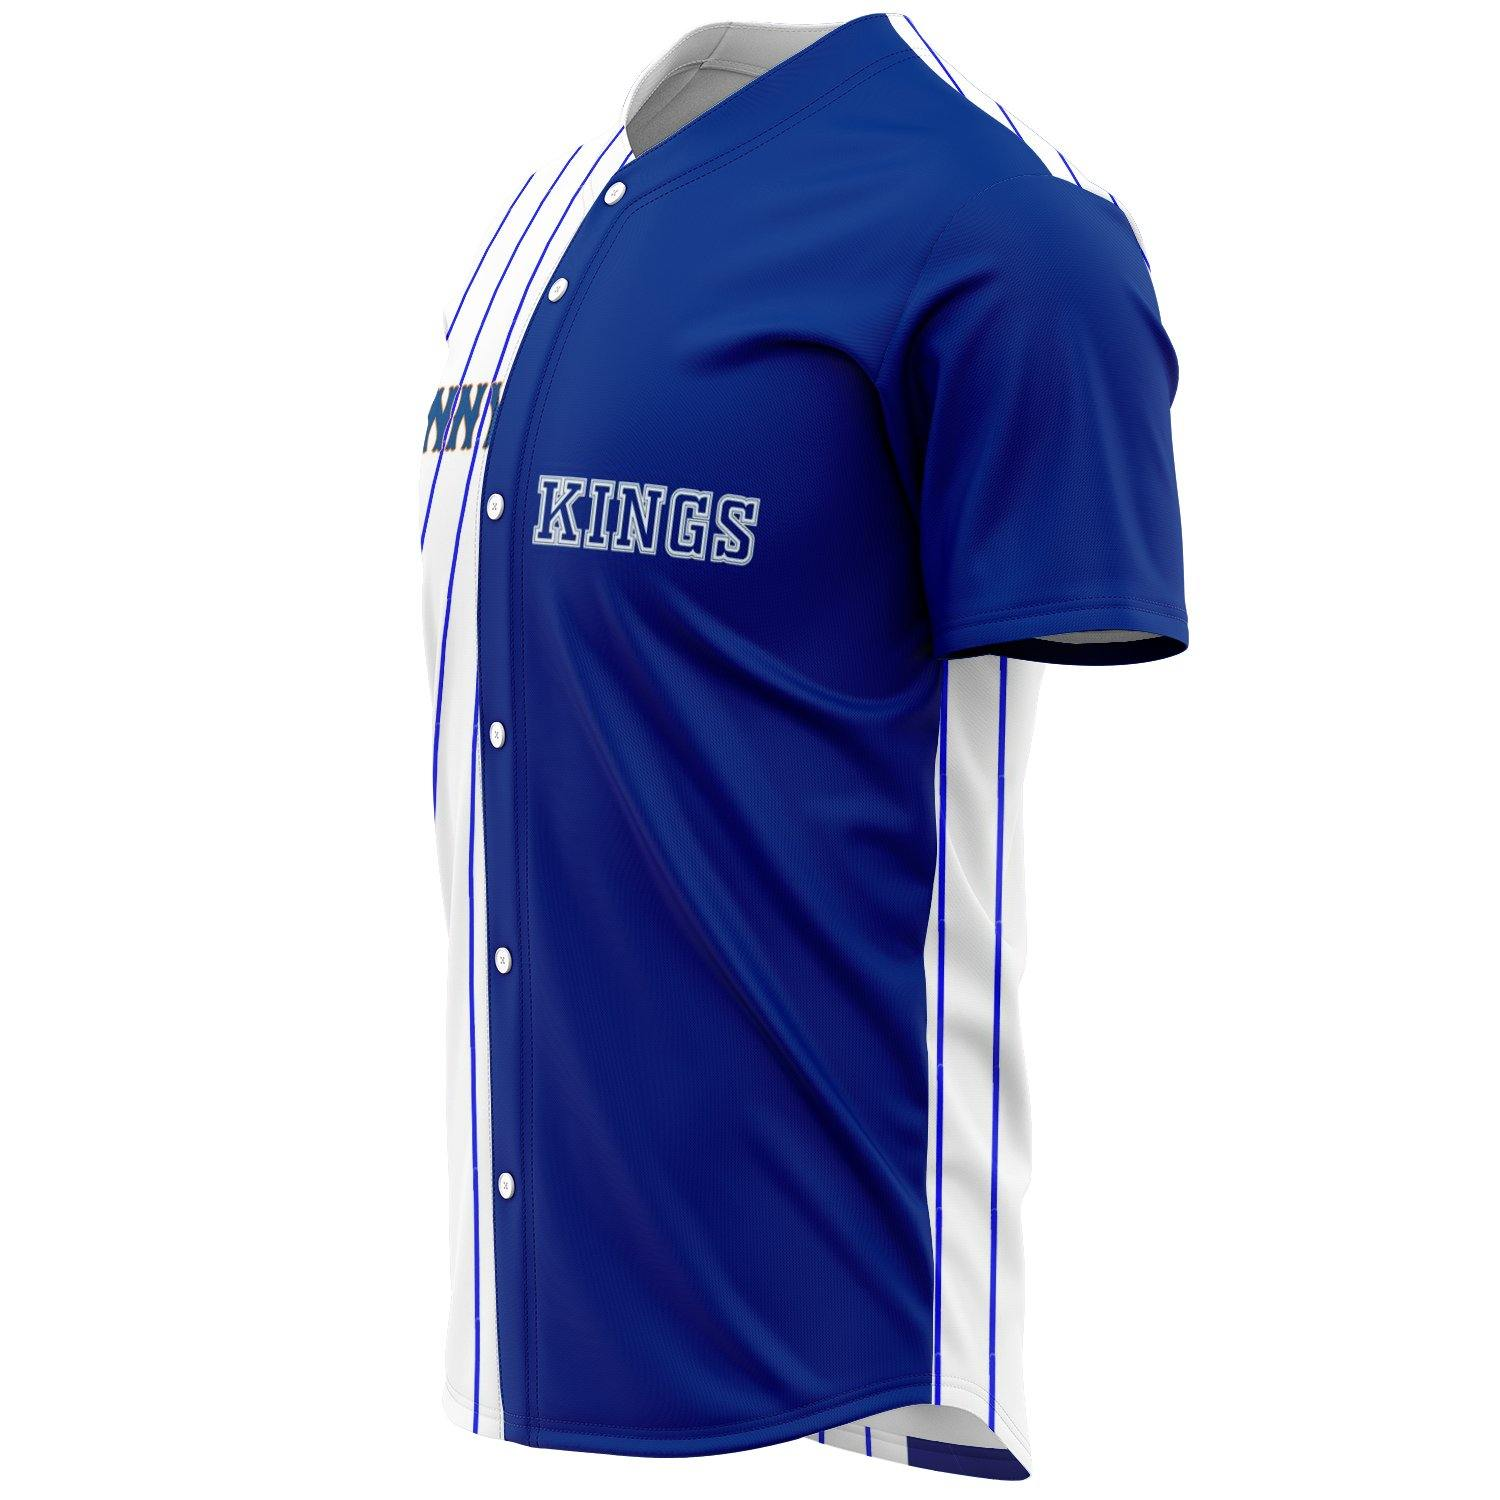 NYC RIVALS JERSEY - Henny Kings